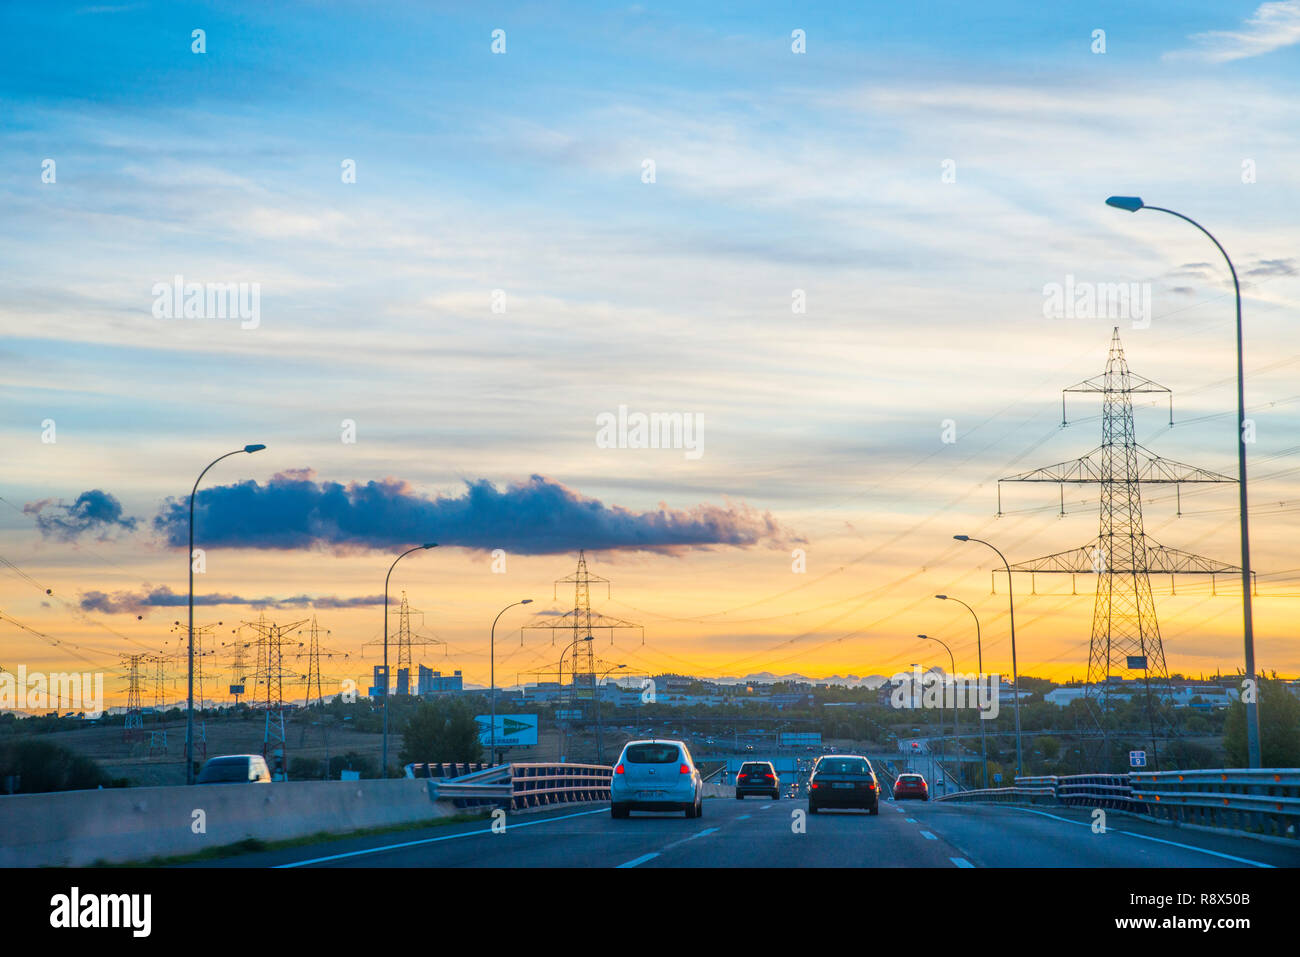 A-1 highway at dusk. Madrid, Spain. Stock Photo